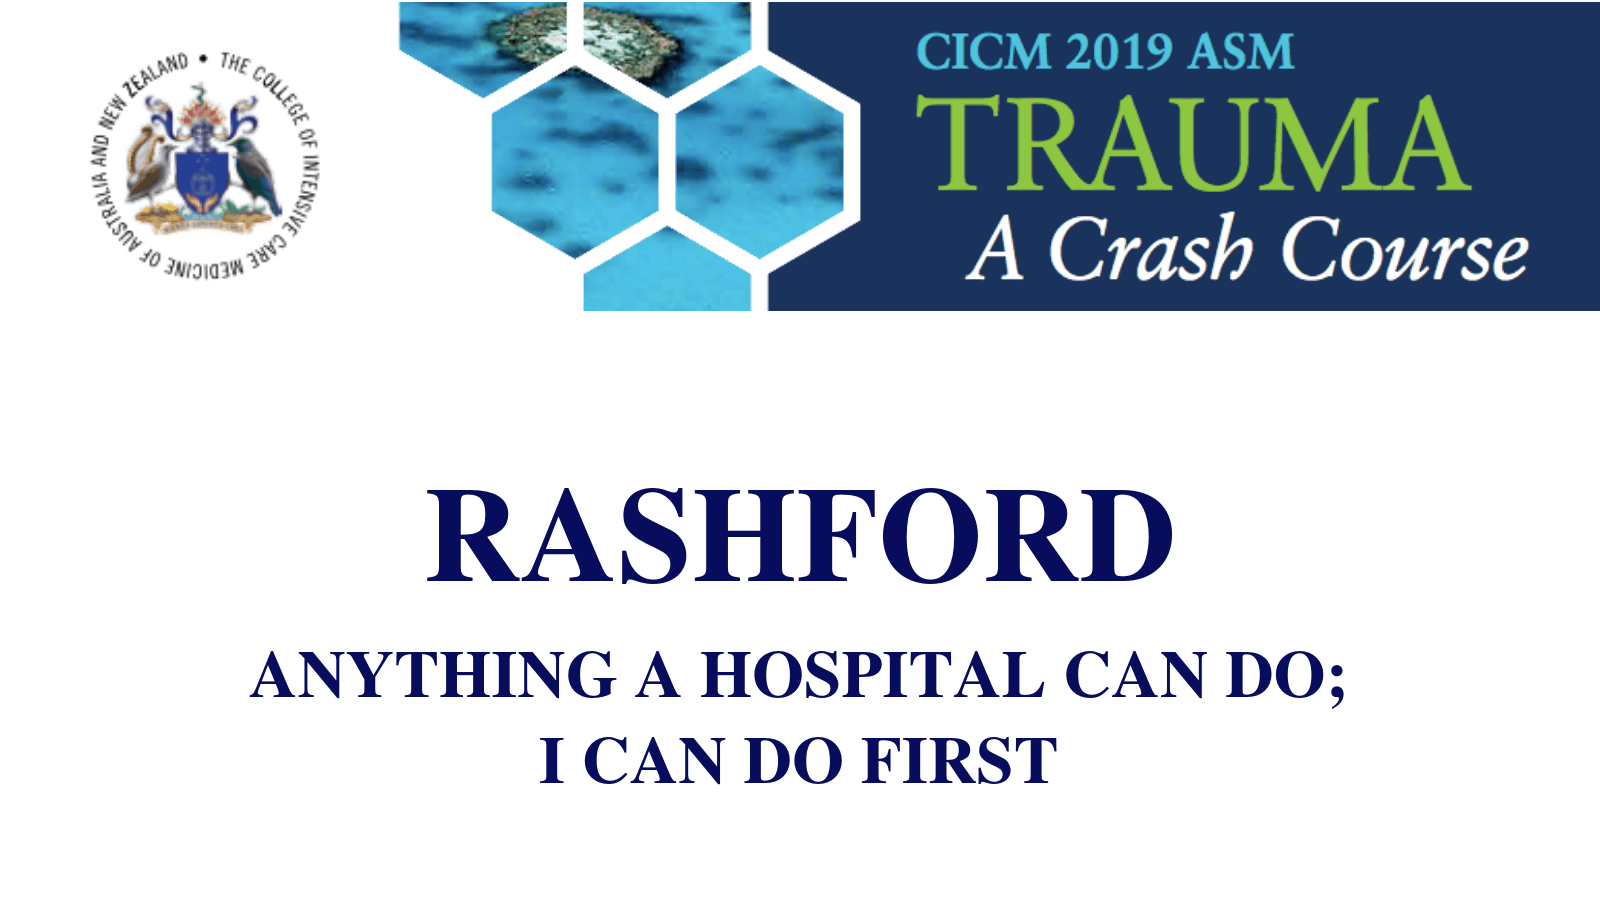 Anything a hospital can do I can do first